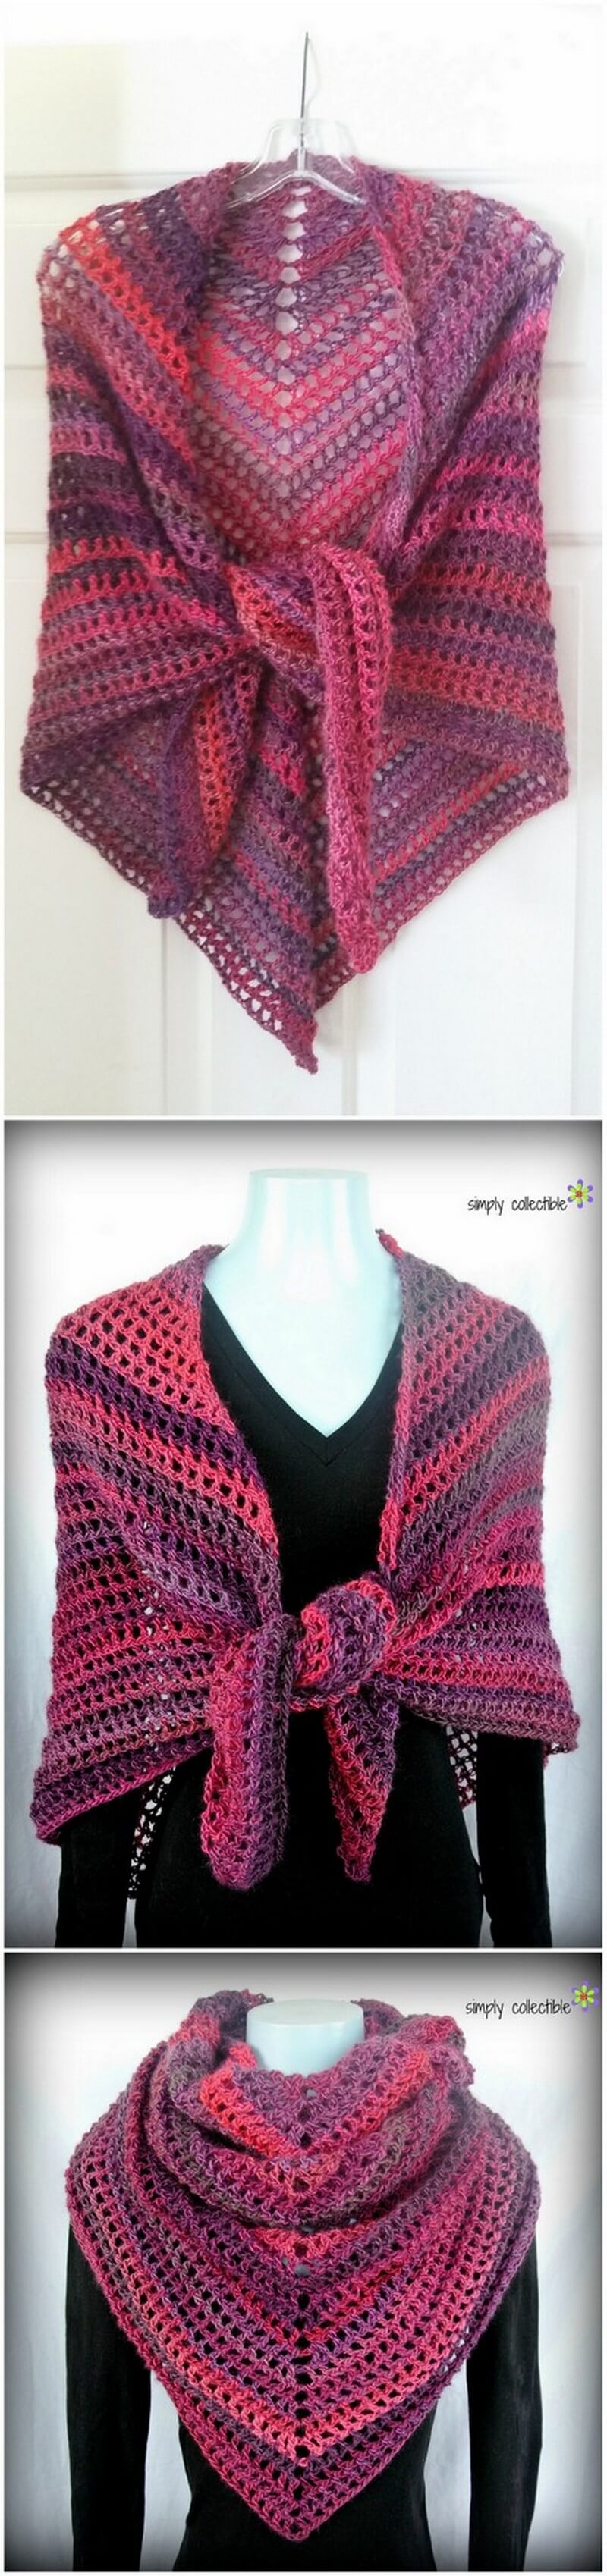 Crochet Shawl Pattern (59)